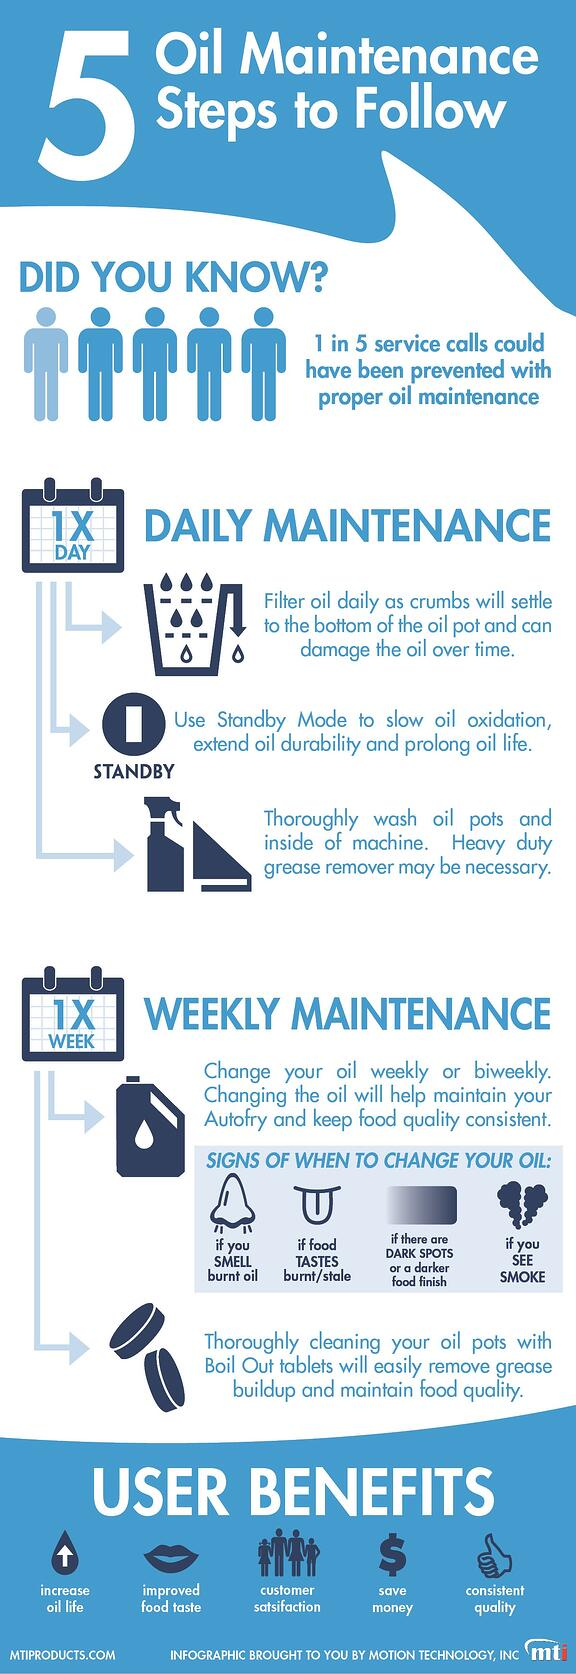 Oil Maintenance Infographic